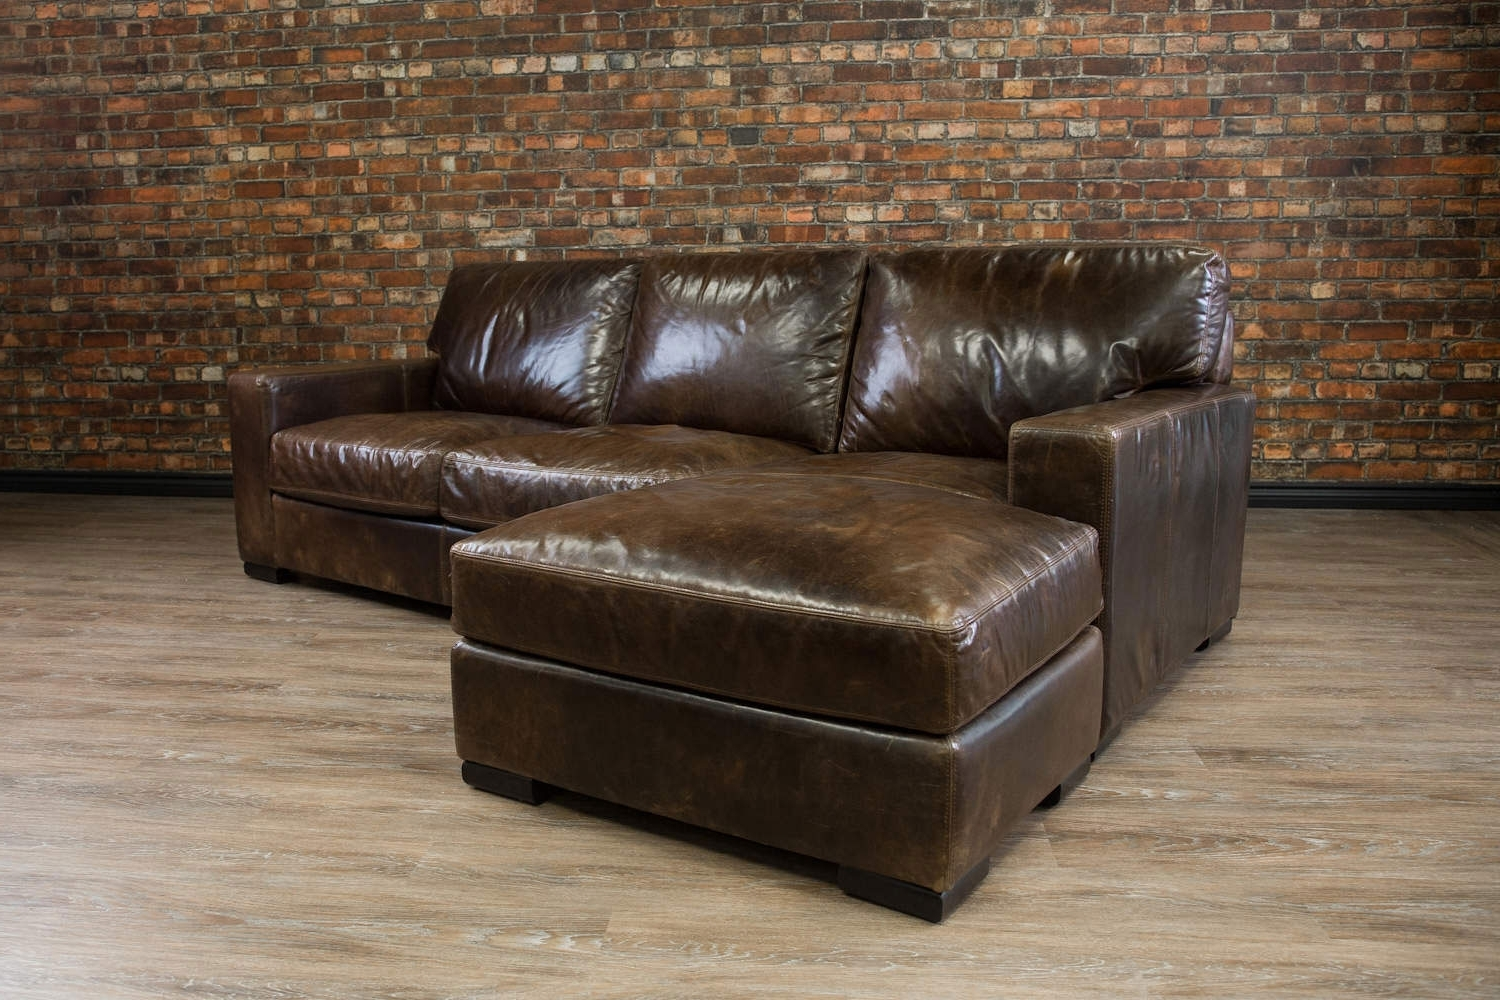 Ottawa Sale Sectional Sofas With Regard To Latest Leather Sofa (View 13 of 15)